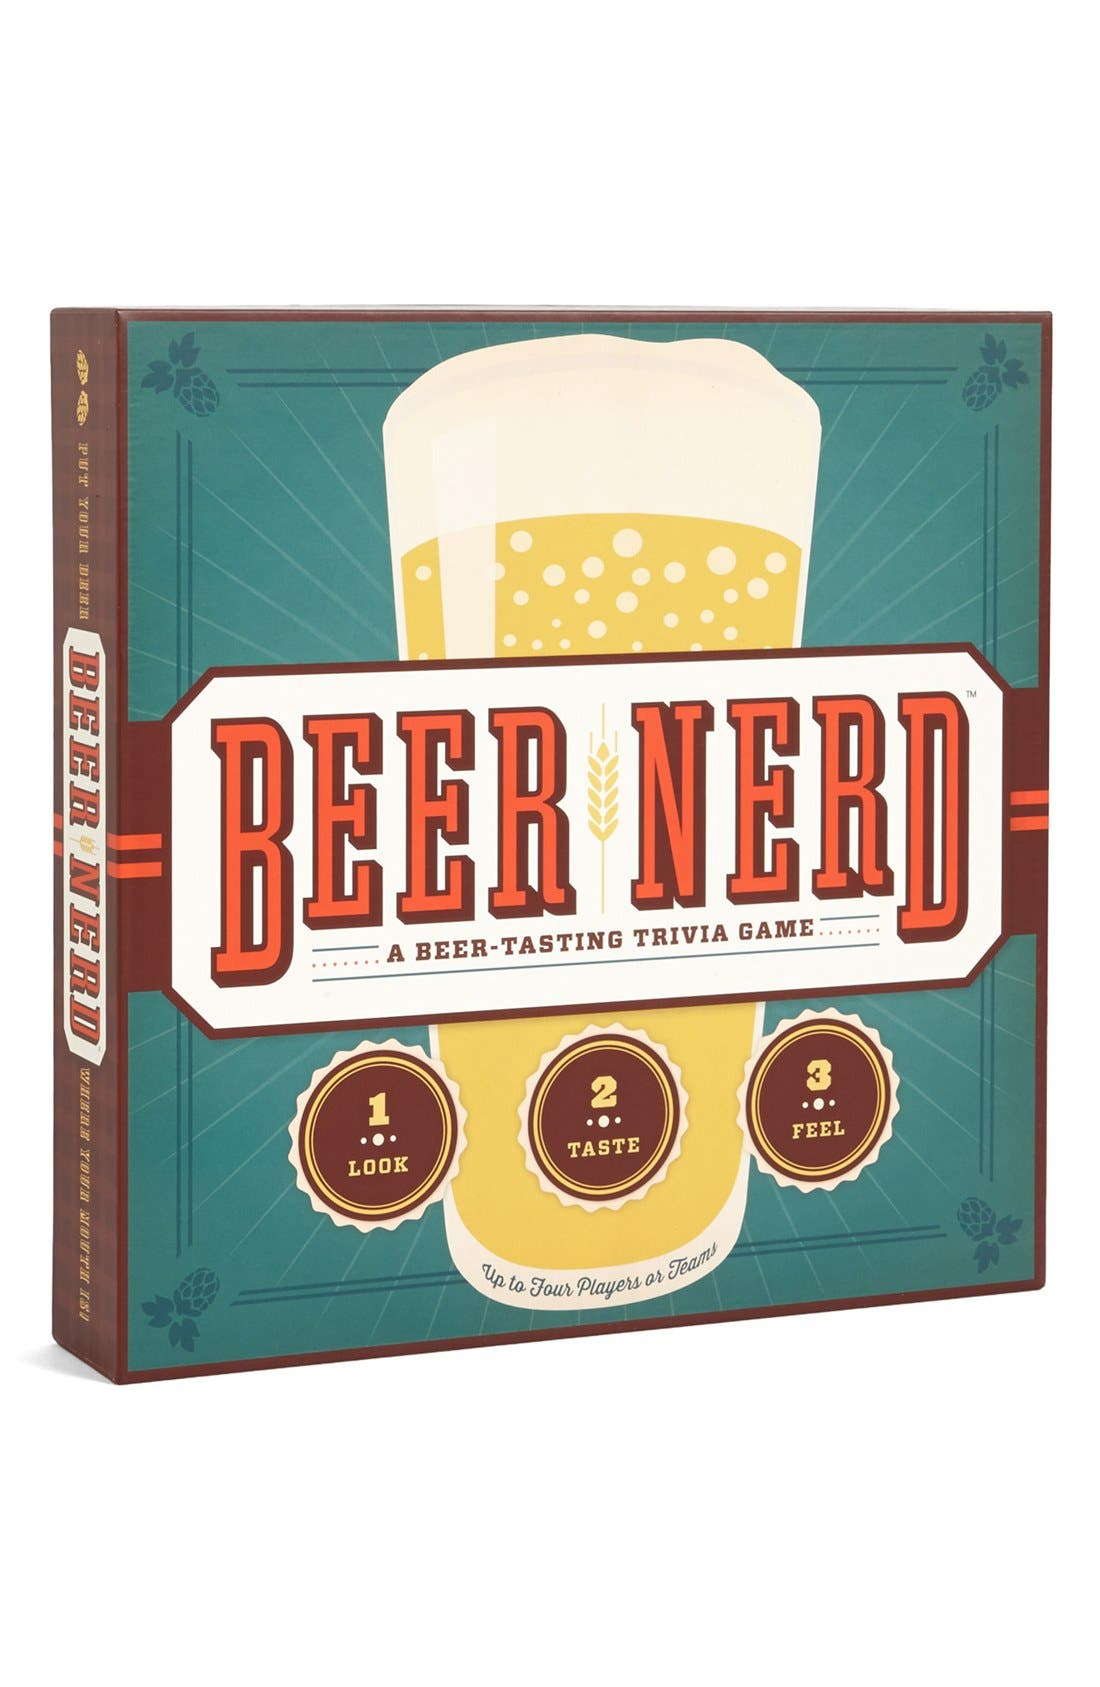 Alternate Image 1 Selected - 'Beer Nerd' Trivia Game